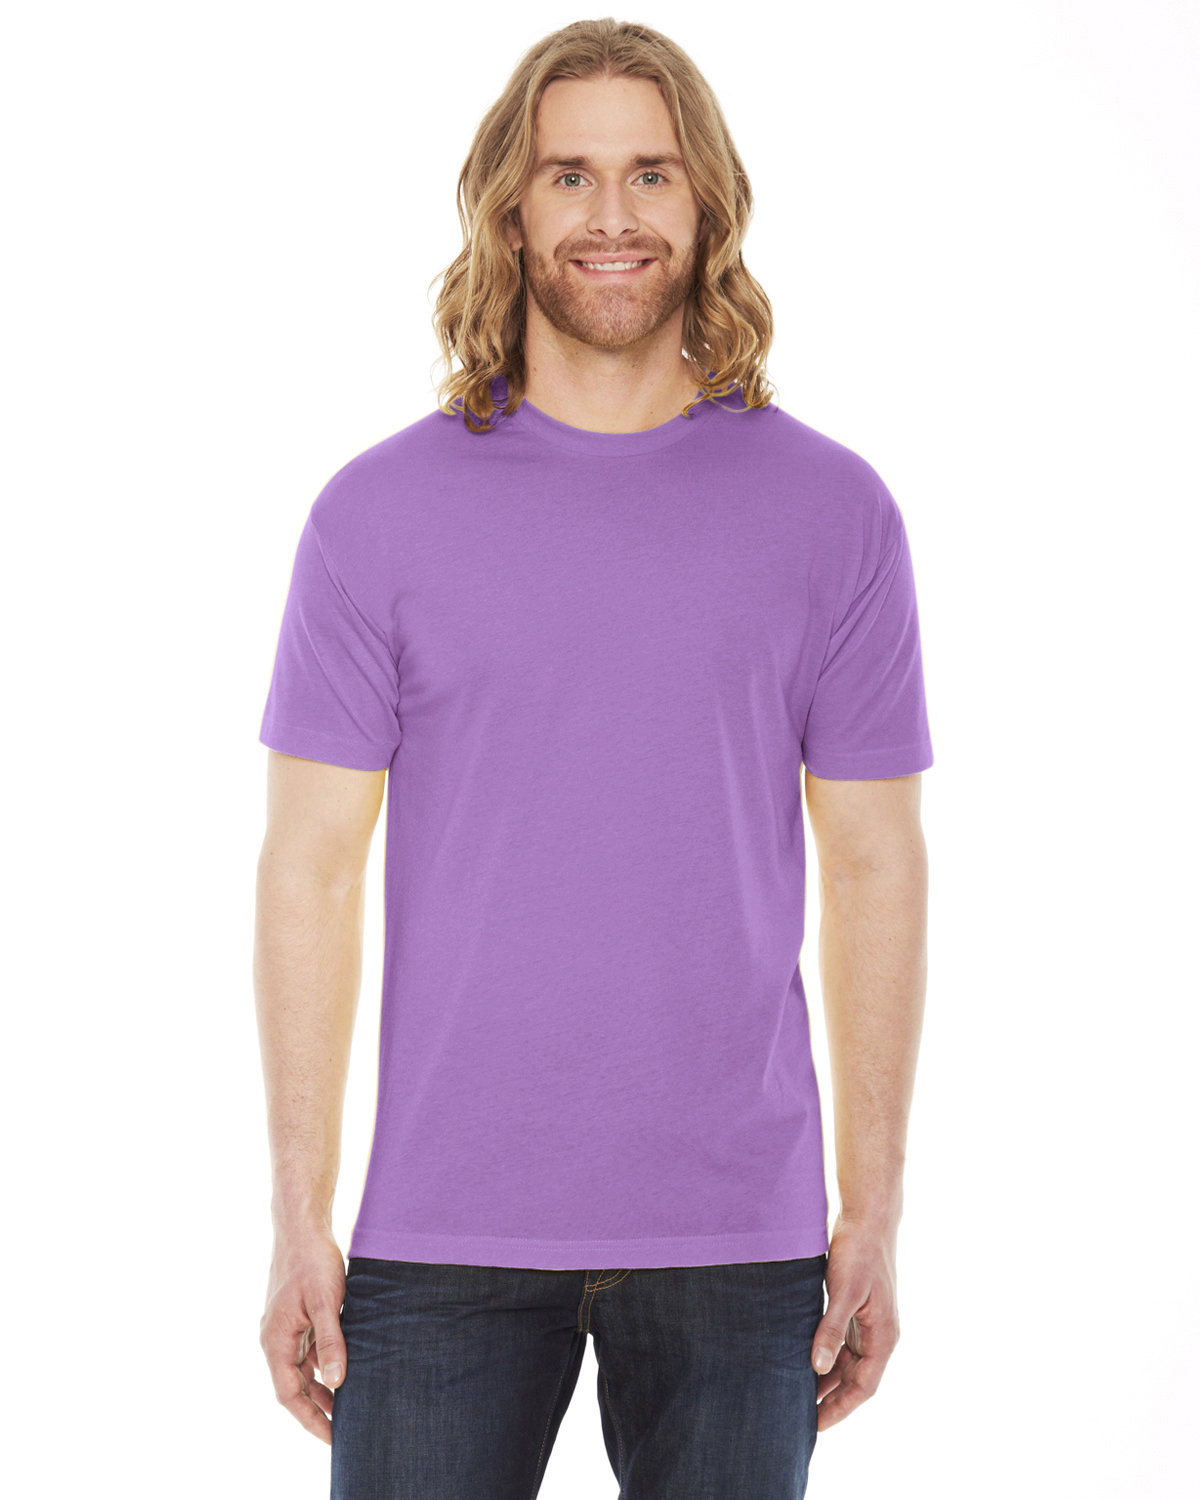 American Apparel Unisex Classic T-Shirt ORCHID